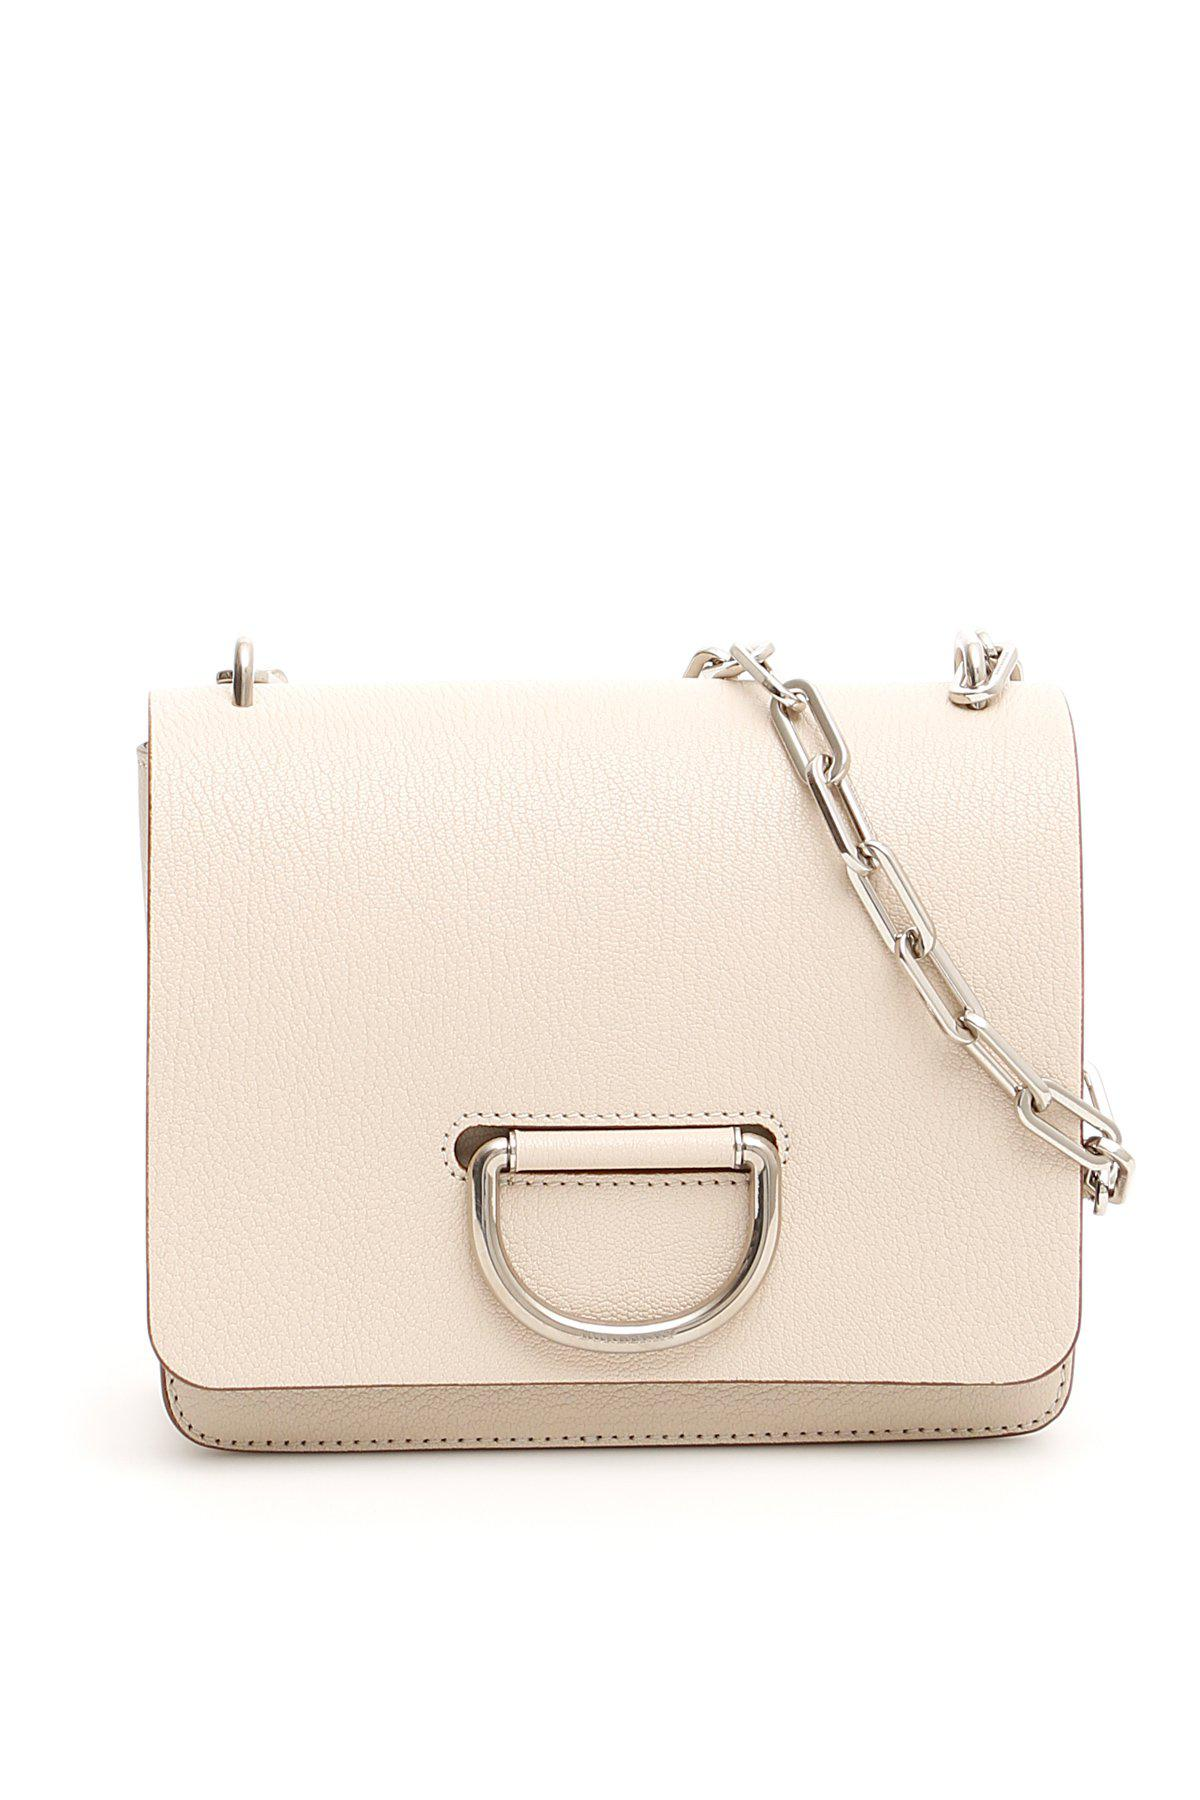 6a3fcc315759 Burberry Small Chain D Ring Shoulder Bag in Natural - Lyst